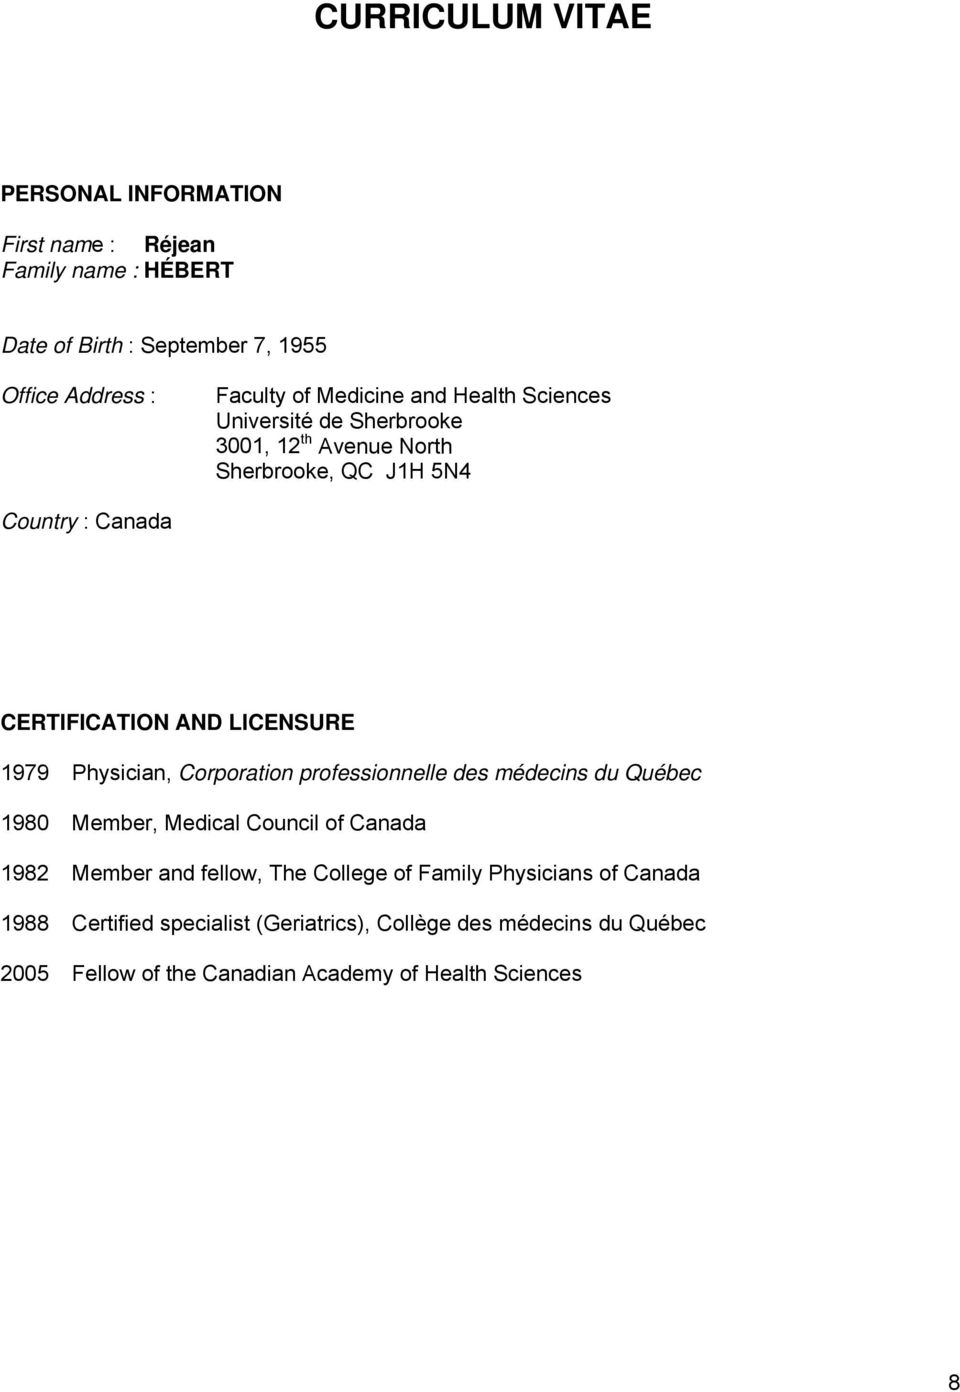 1979 Physician, Corporation professionnelle des médecins du Québec 1980 Member, Medical Council of Canada 1982 Member and fellow, The College of